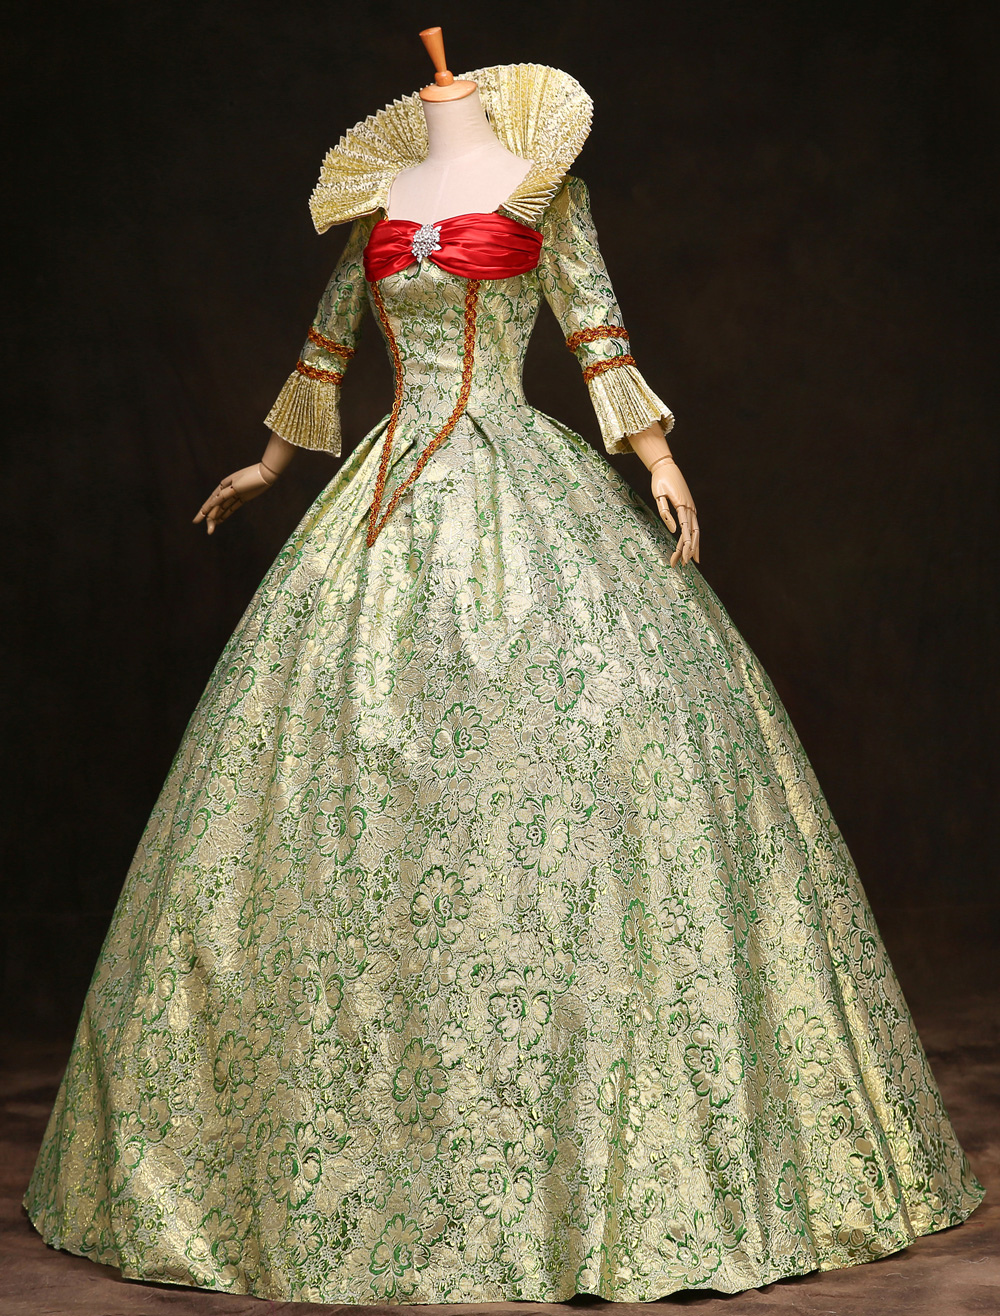 Buy Royal Retro Costume Women's Victorian Ball Gown Jacquard Floral Green Ruffle Tiered Vintage Princess Costume Halloween for $135.99 in Milanoo store